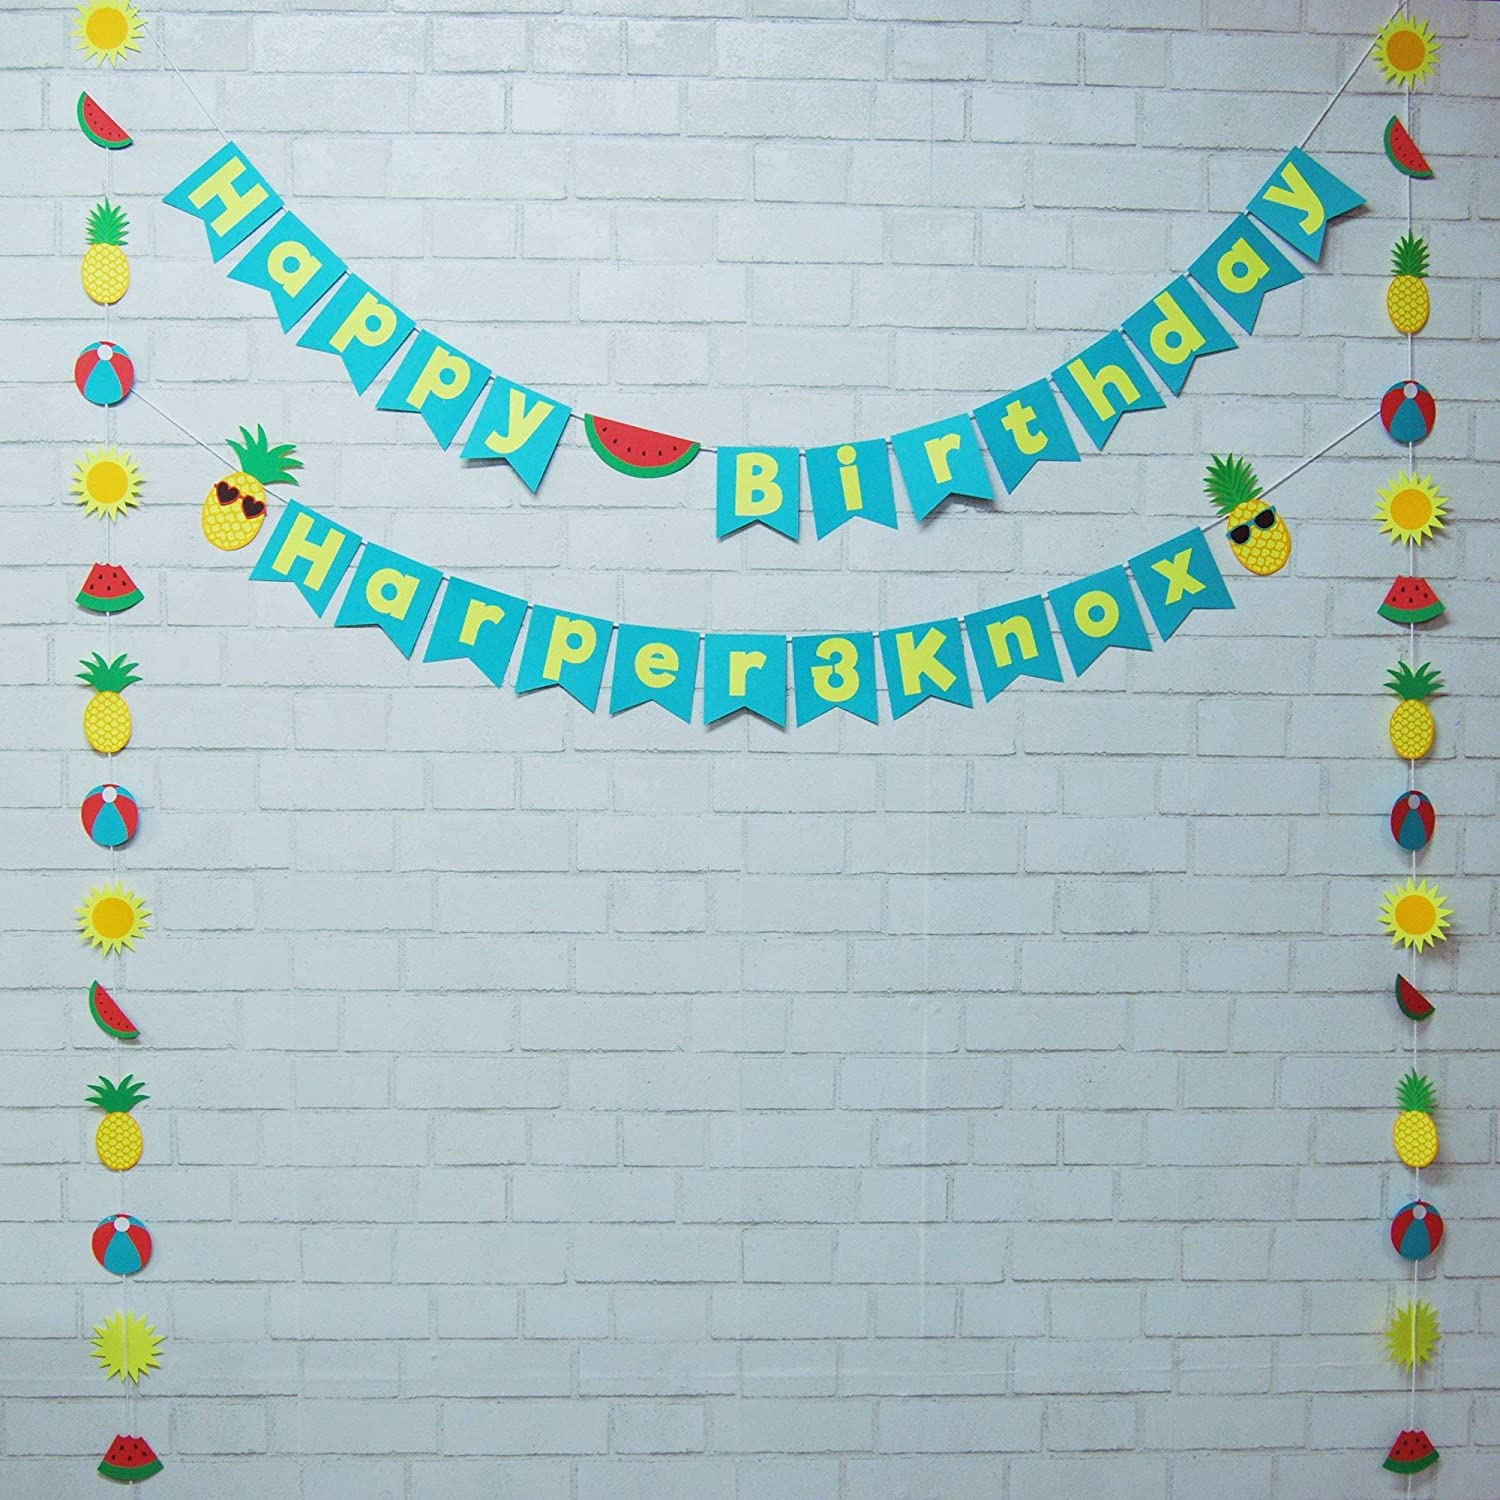 Two-tti Popularity 2021 Fruity Birthday Banner and Garland